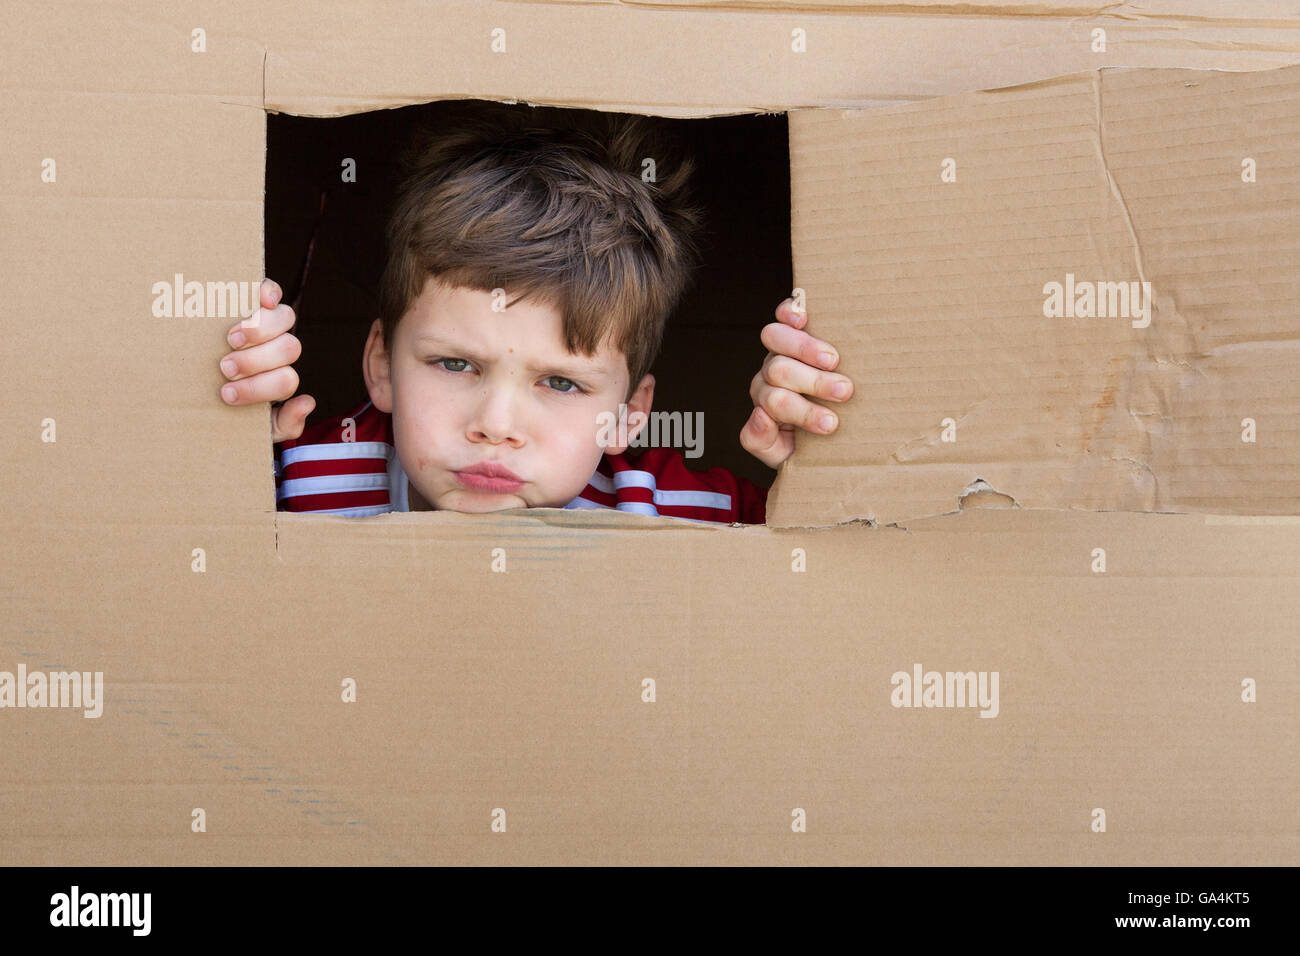 A 7 year old boy looks out of a window cut from a cardboard box - Stock Image